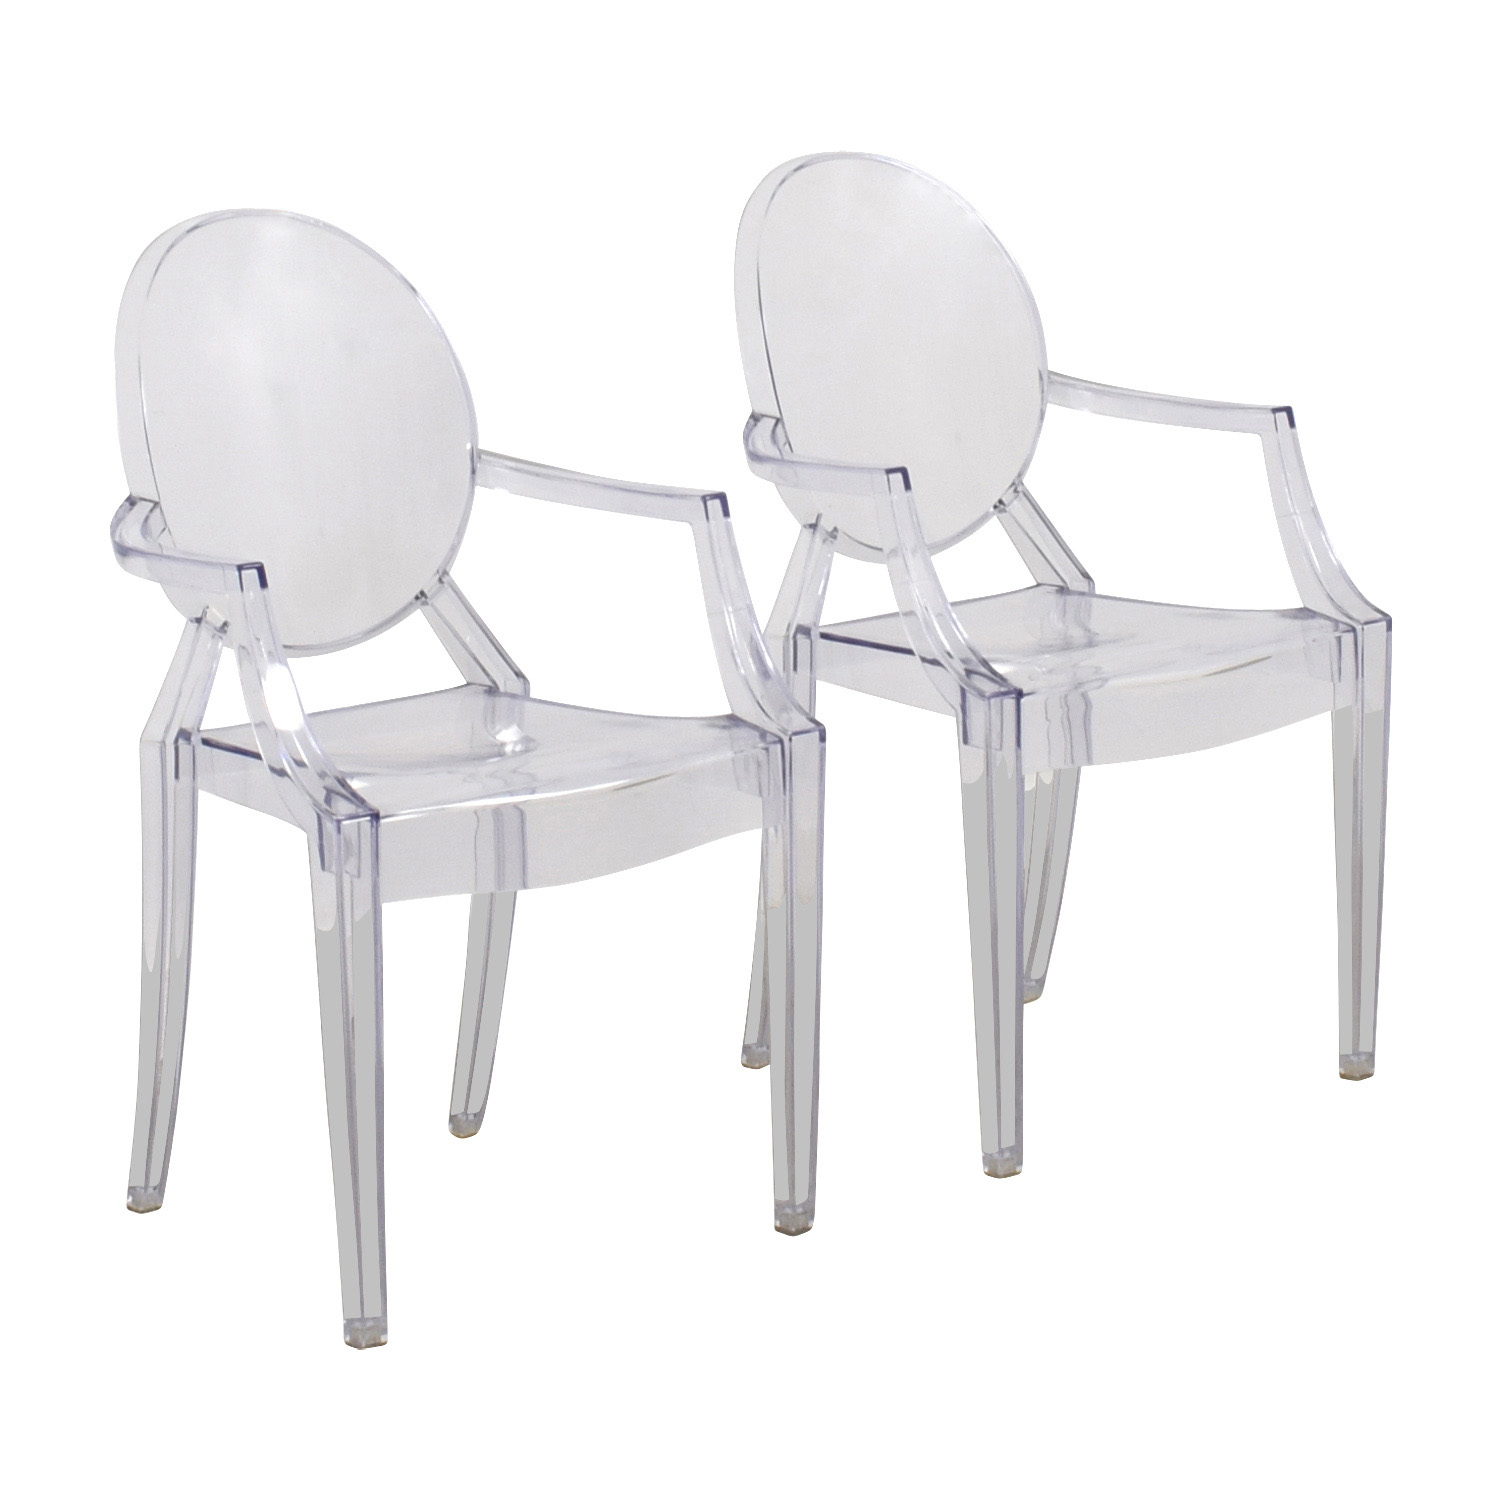 CB2 CB2 Acrylic Chairs for sale